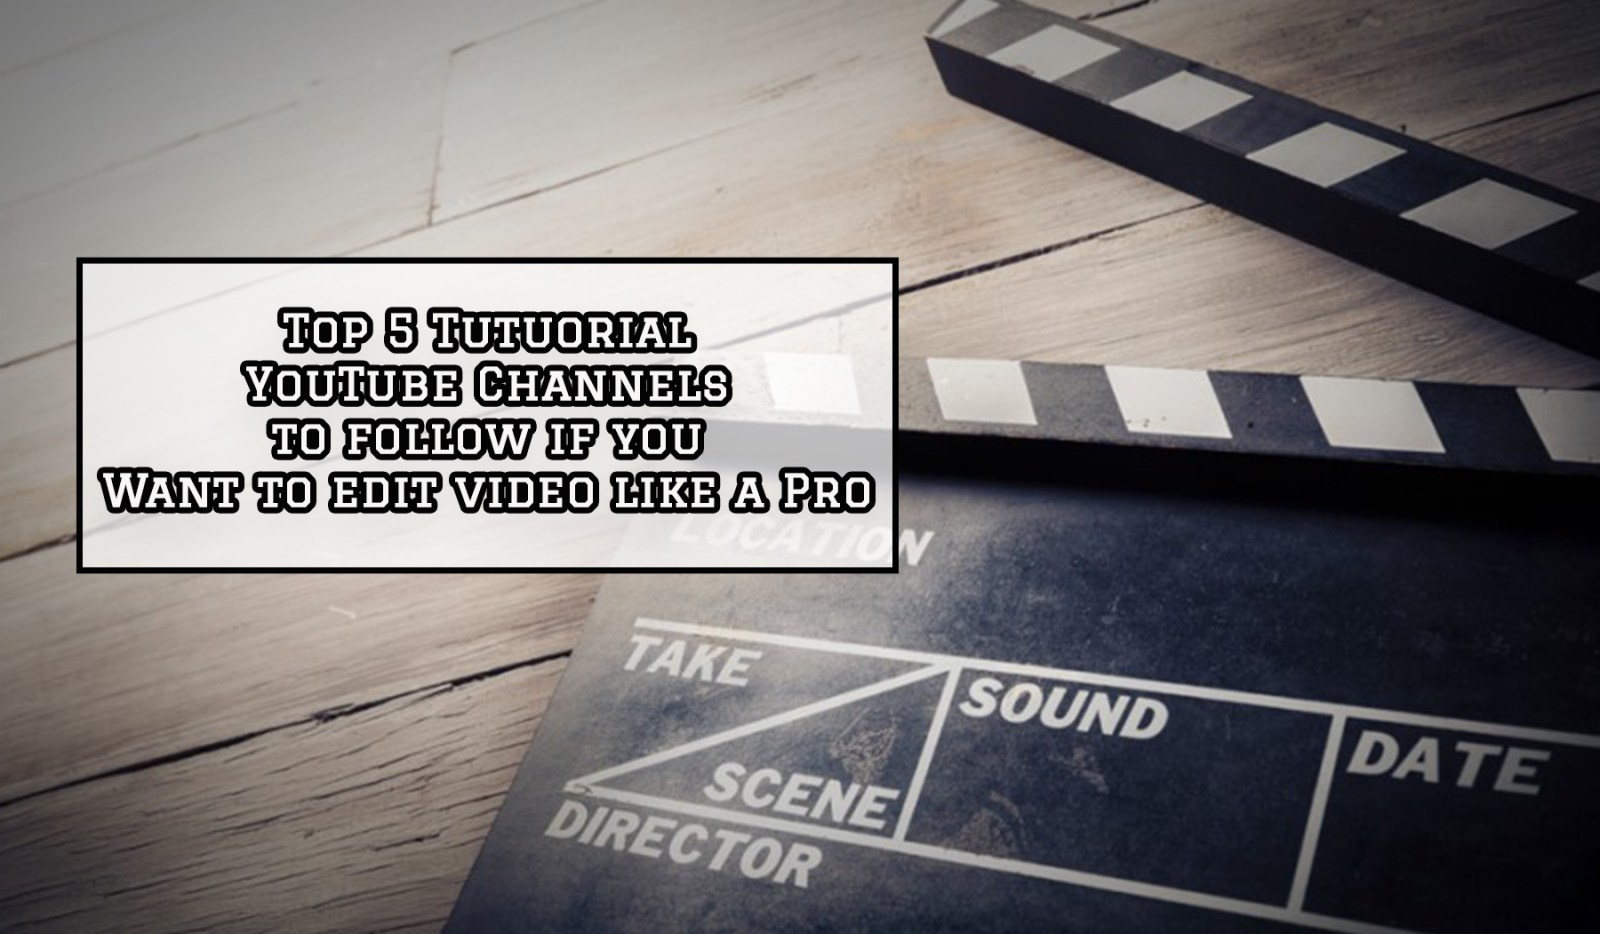 5 Tutorials YouTube Channels to follow if you Want to edit video like a Pro - One Epic Road Trip Blog